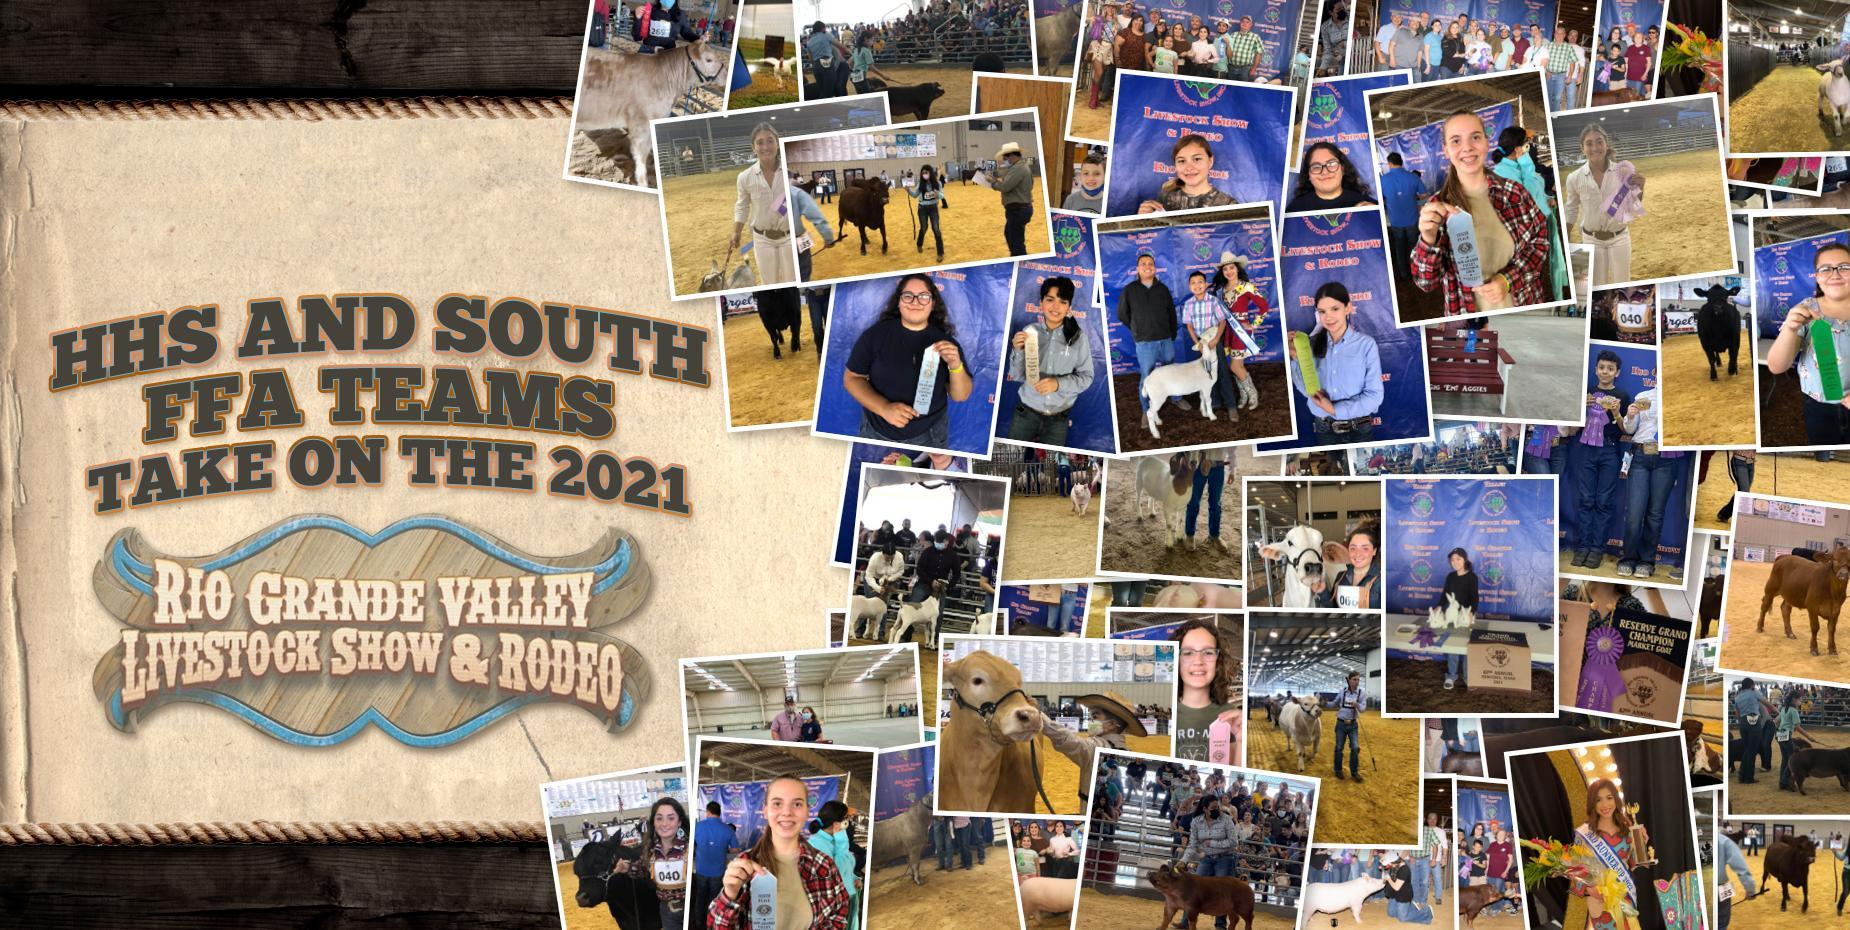 HHS and South FFA teams take on the 2021 Rio Grande Valley Livestock Show